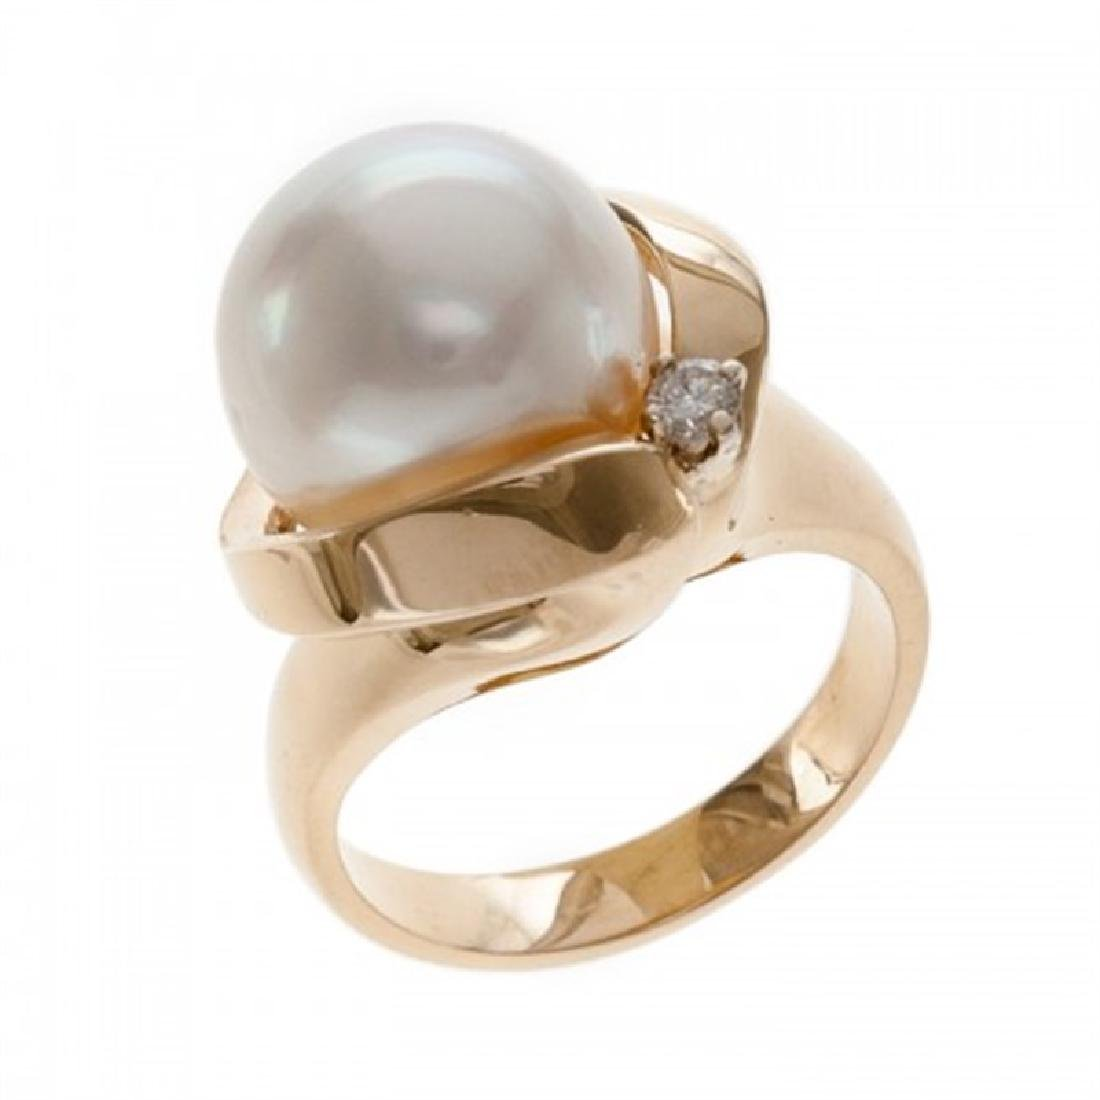 12.0-12.5mm South Sea Pearl Ring with Diamond